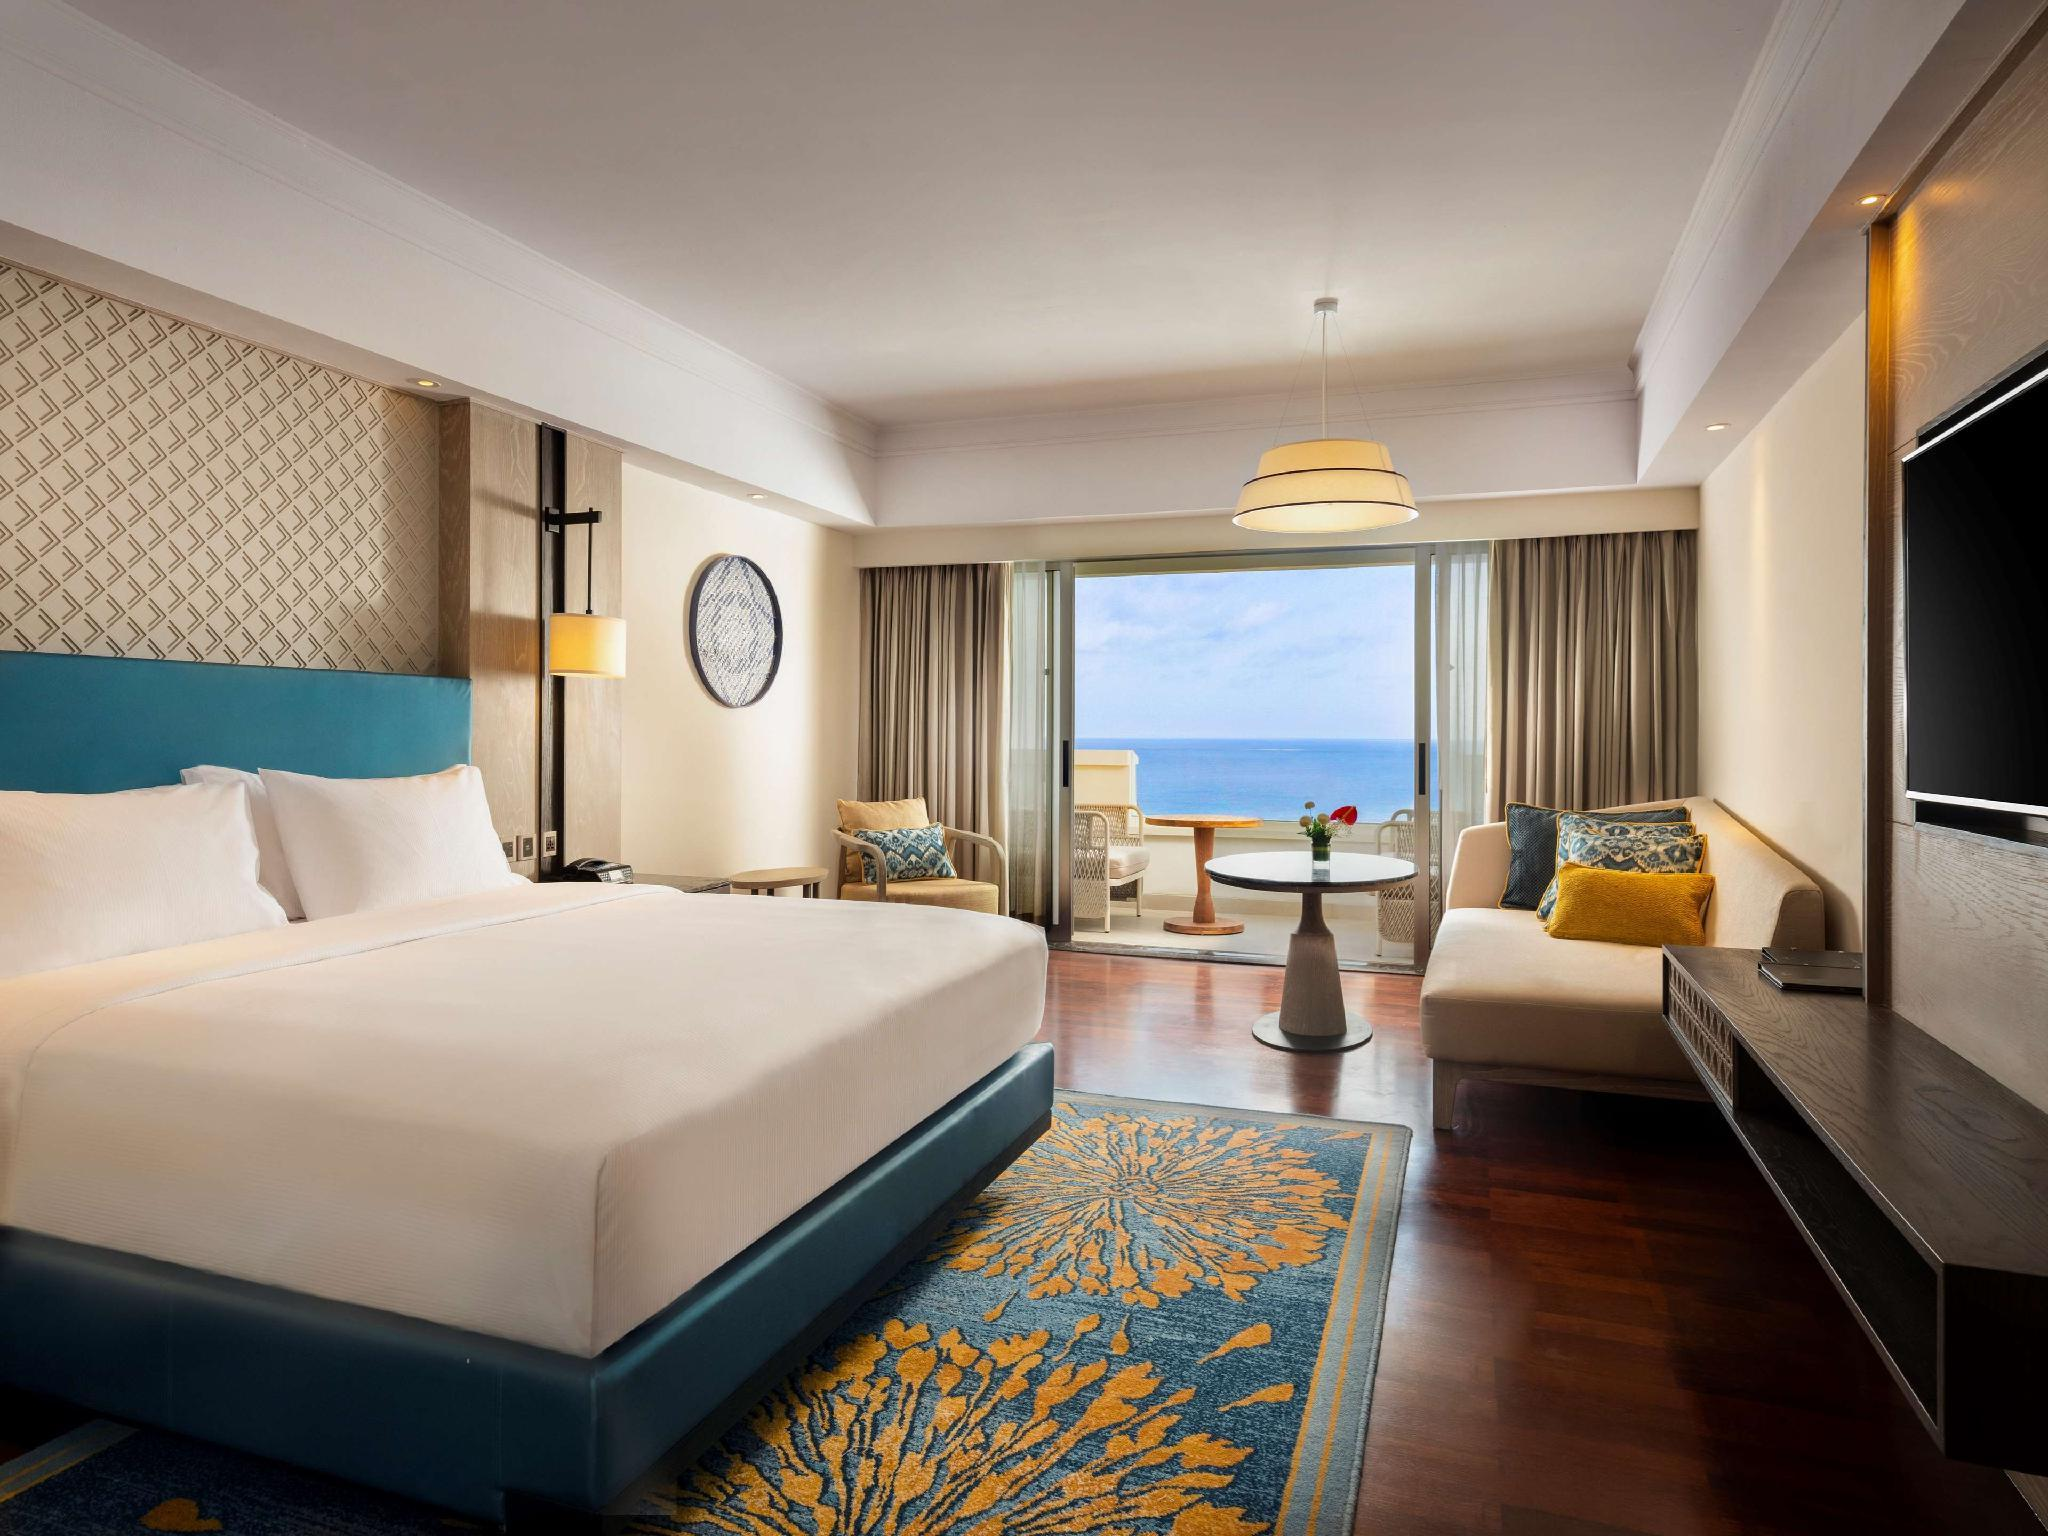 King Executive Pemandangan Samudera (King Executive Ocean View)